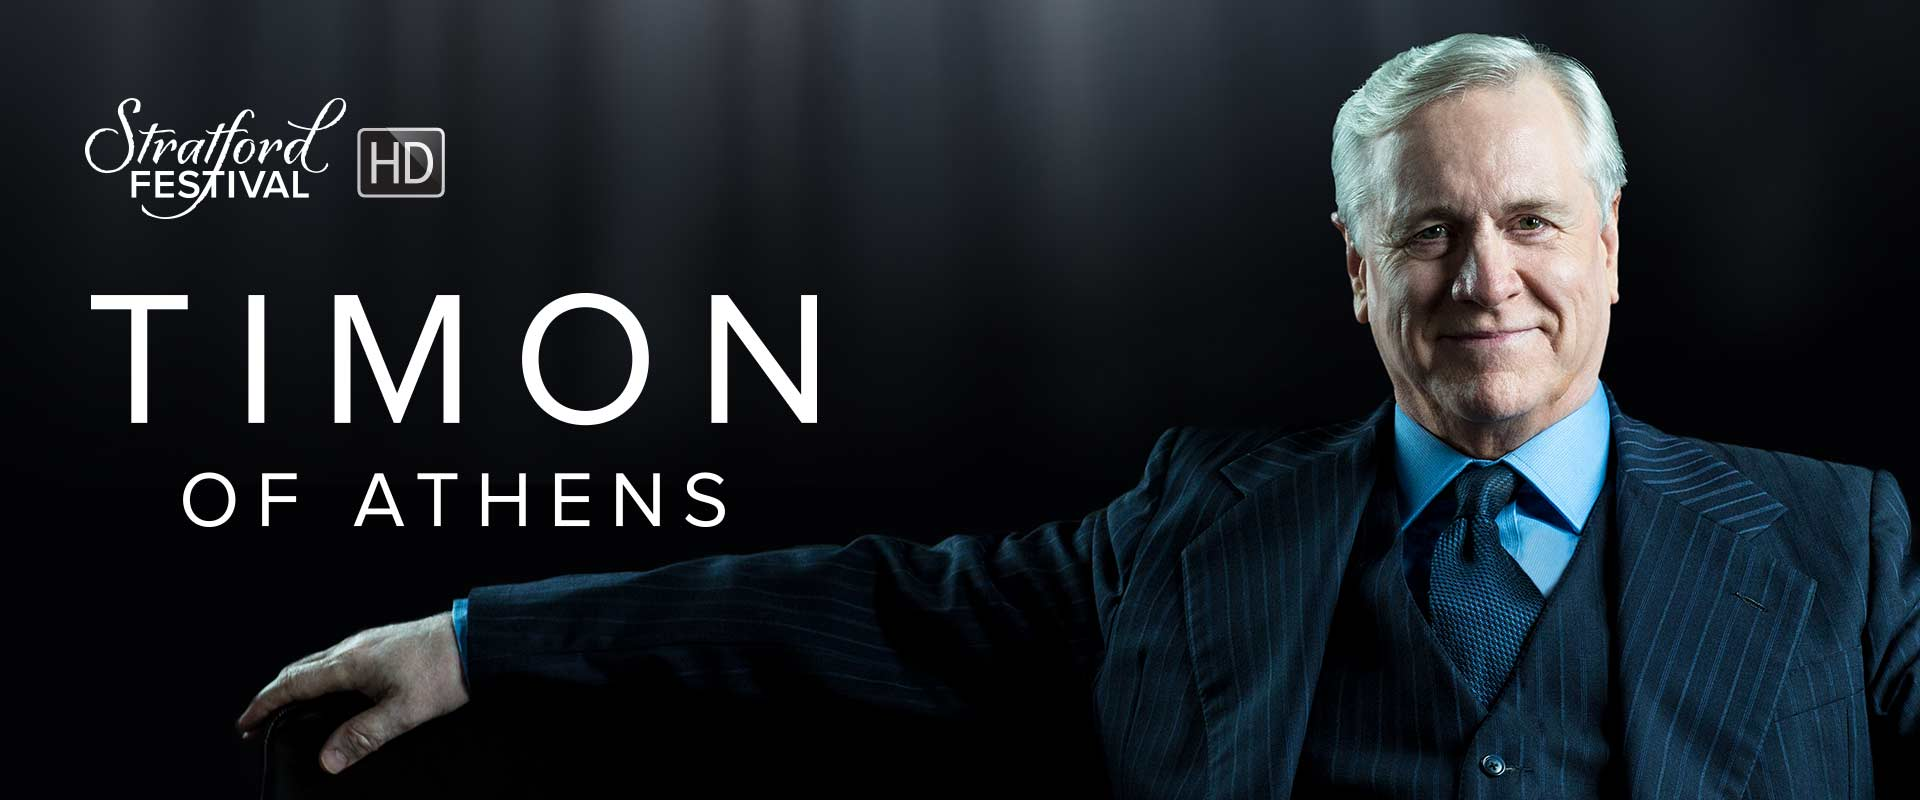 Publicity photo from Timon of Athens featuring Joseph Ziegler.